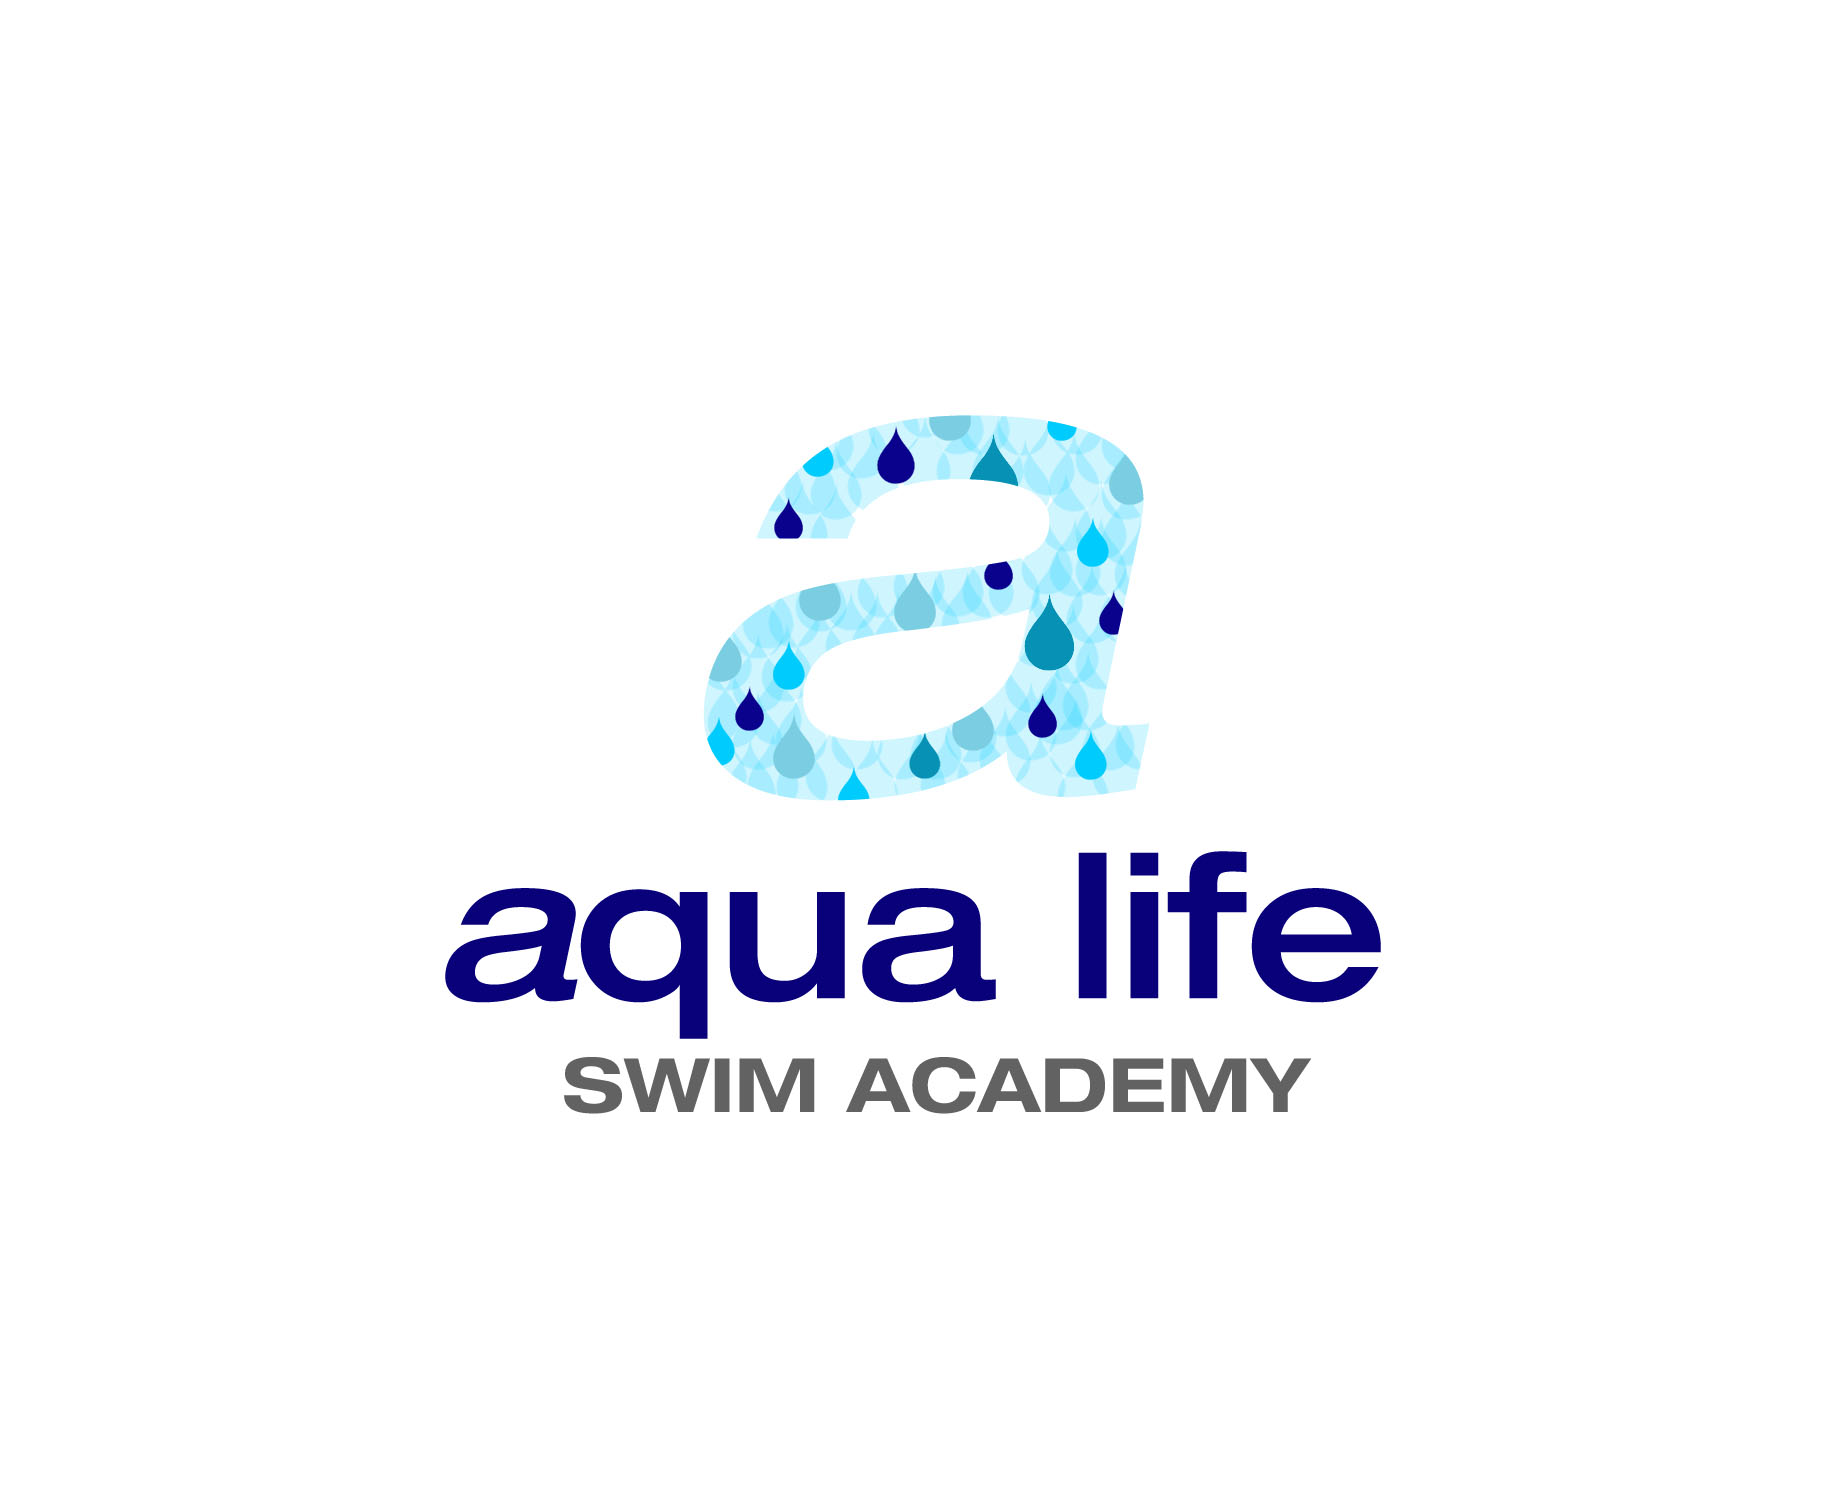 Logo Design by Lama Creative - Entry No. 228 in the Logo Design Contest Artistic Logo Design Wanted for The Aqua Life Swim Academy.